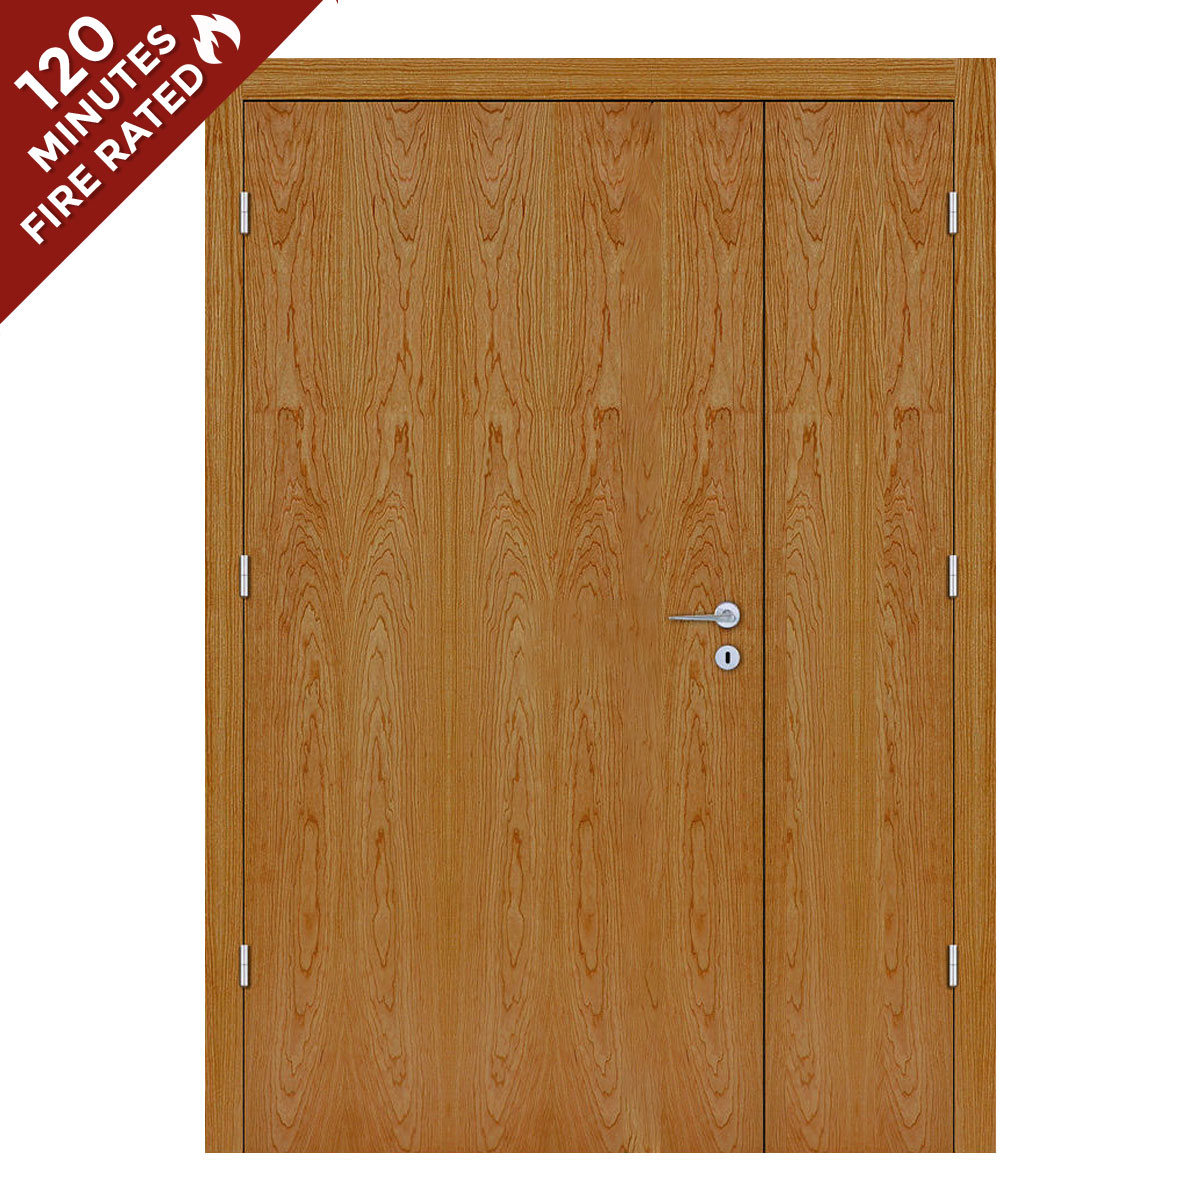 Cherry Hospital Door FD120